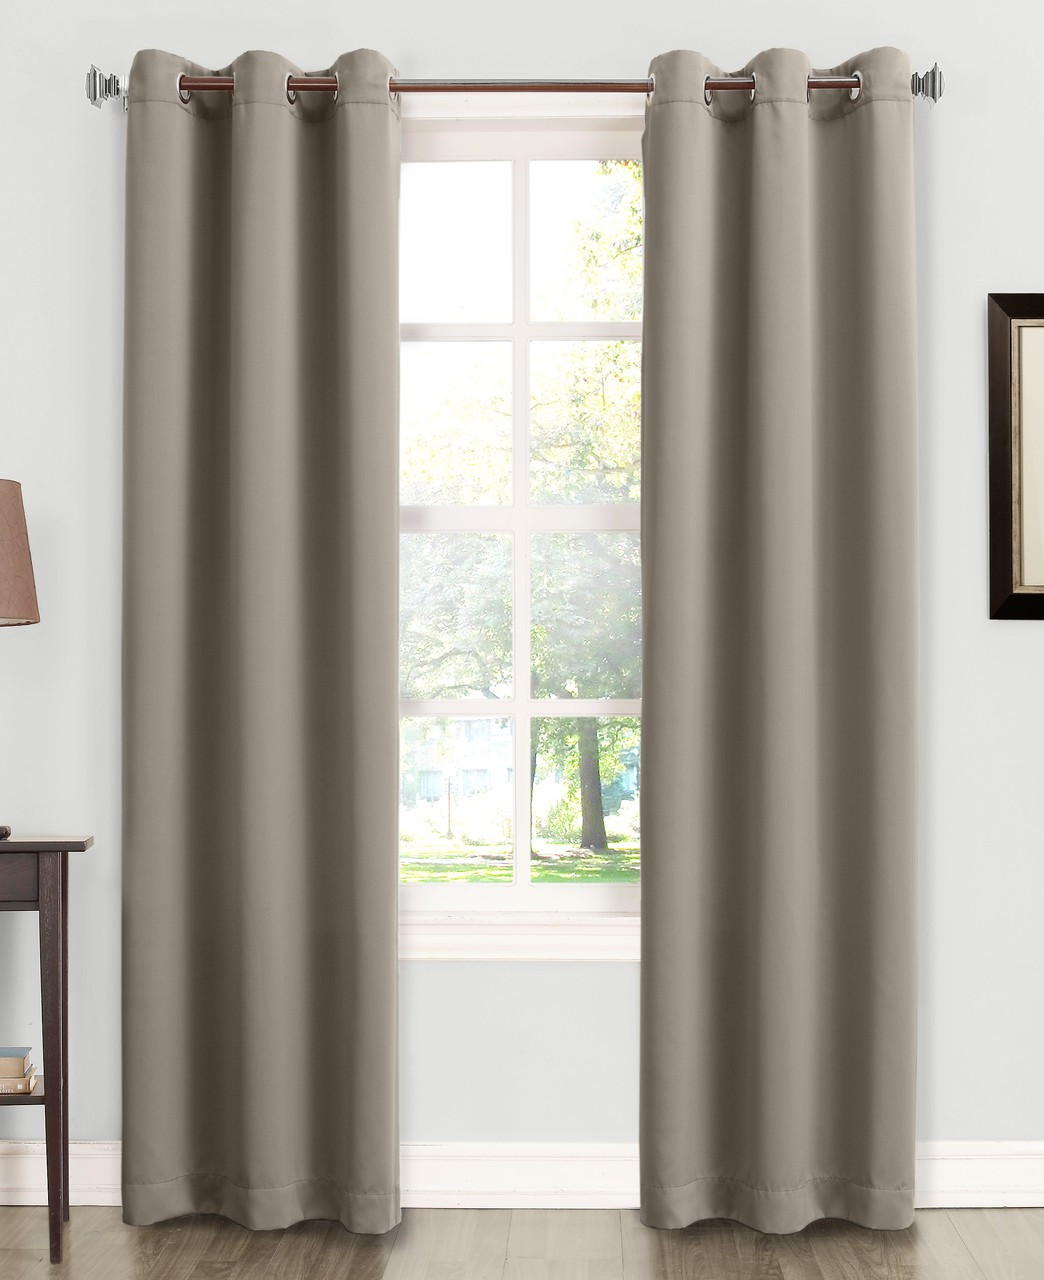 Kingsley Sun Zero Room Darkening Grommet Top Curtain